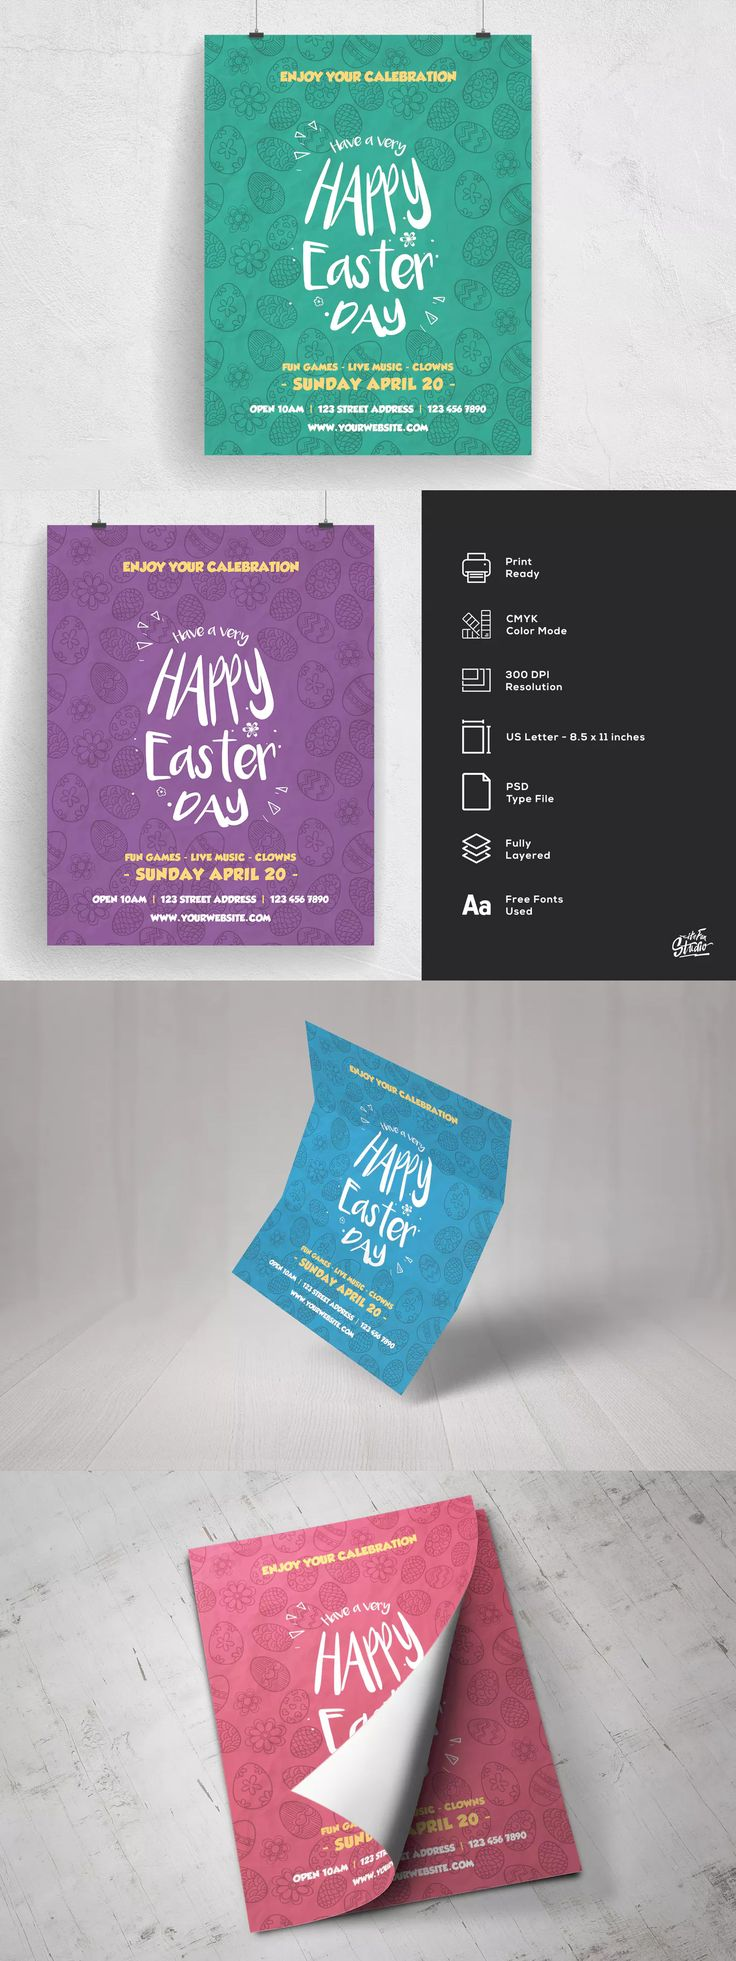 Happy Easter Day Flyer Template PSD US Letter Size